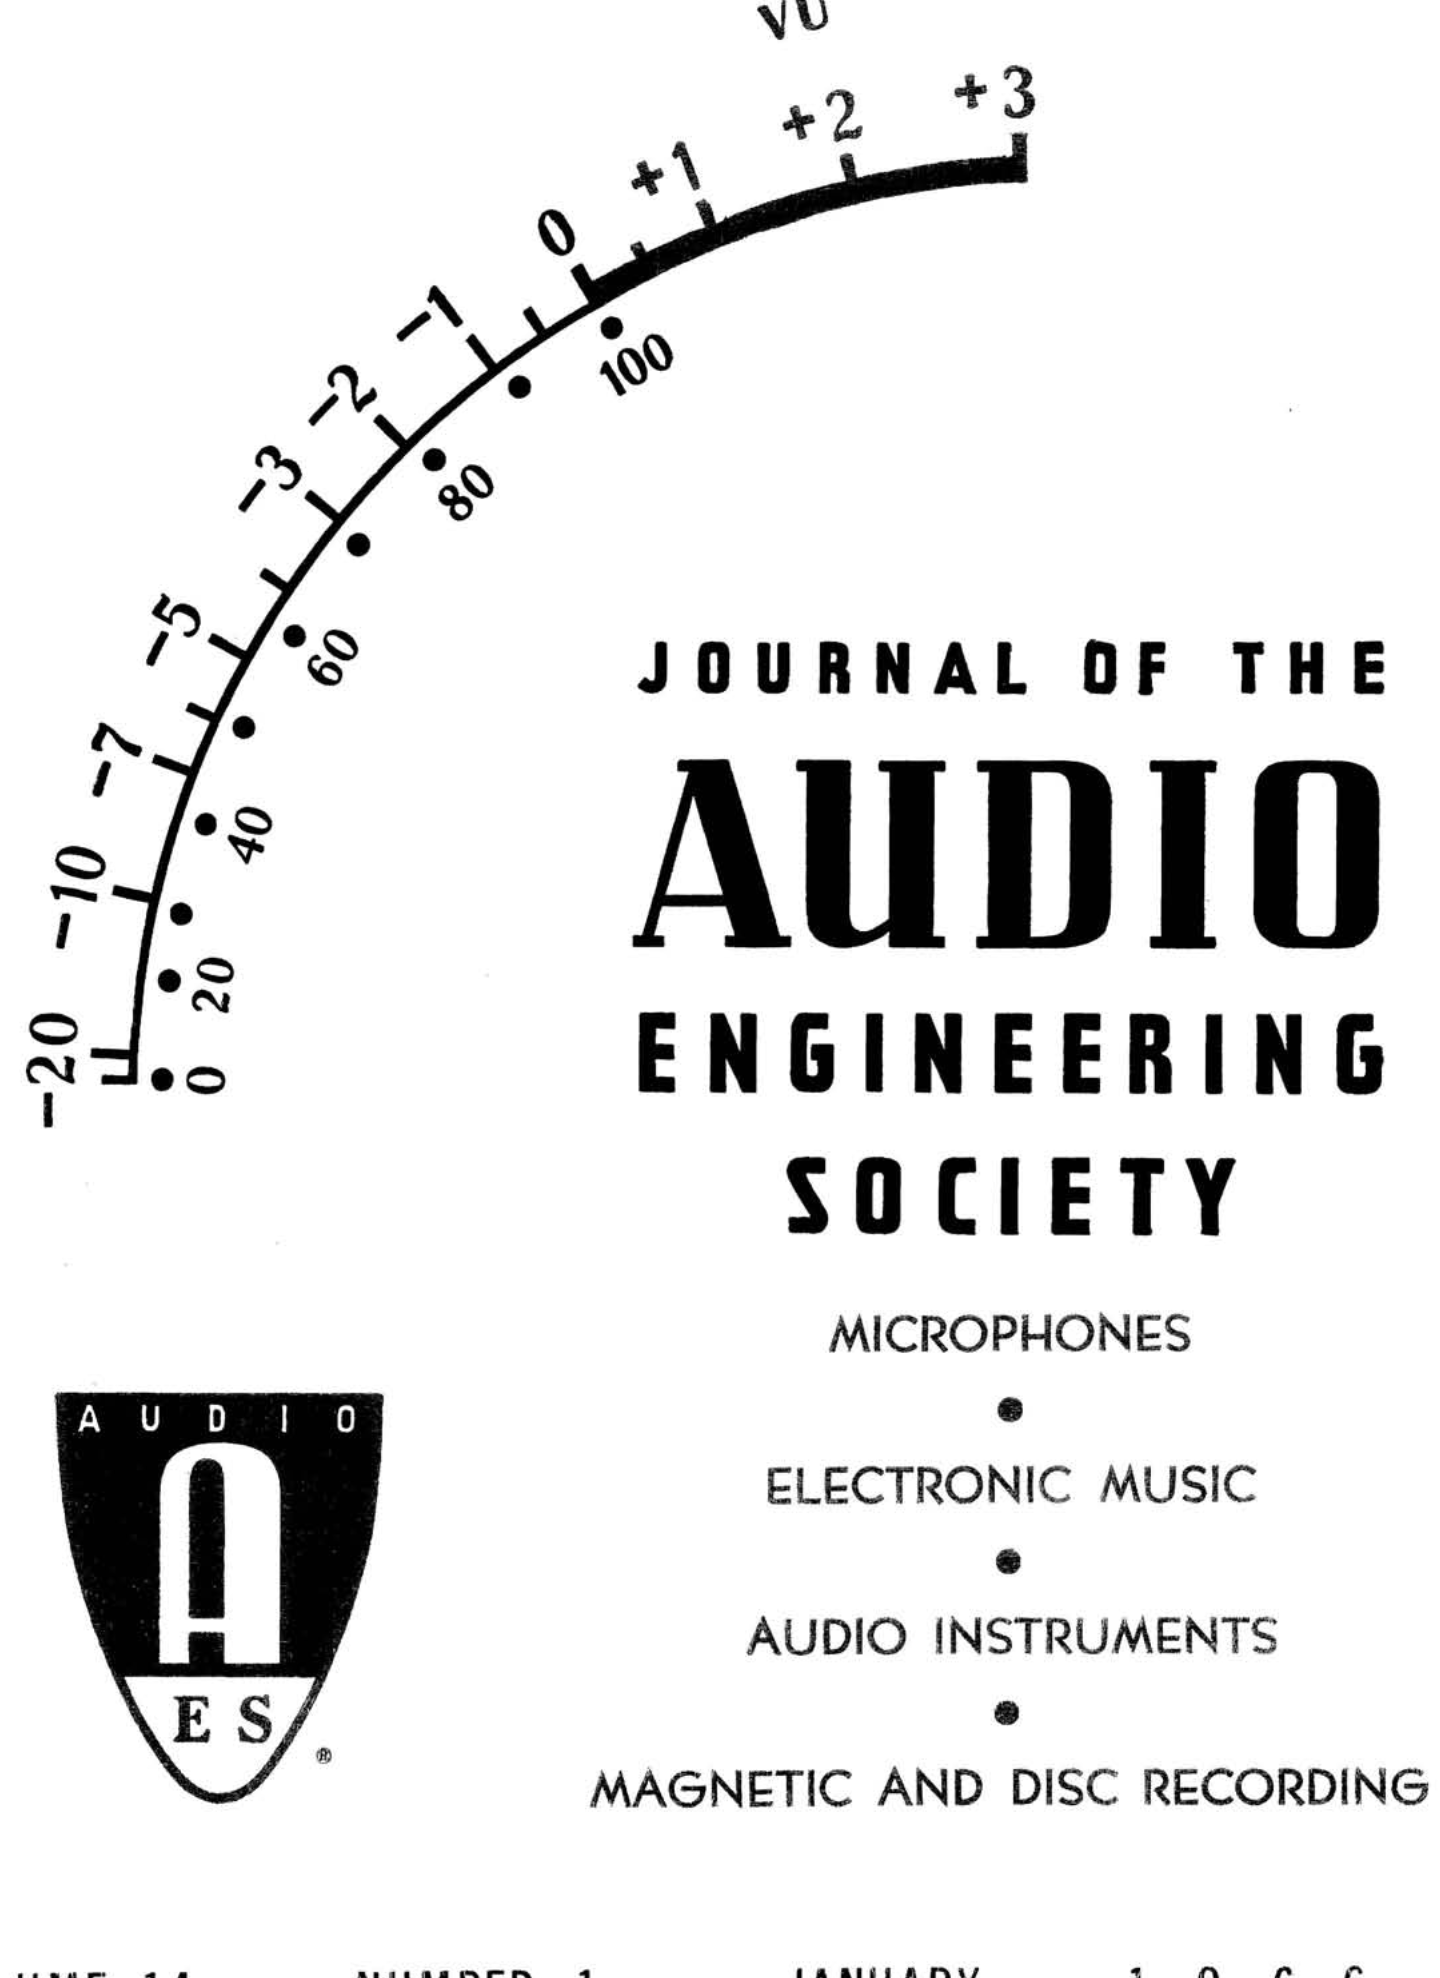 [QNCB_7524]  AES E-Library » Complete Journal: Volume 14 Issue 1 | 1986 Ford Tempo 2 3 Hse Cfi Engine Diagram |  | Audio Engineering Society